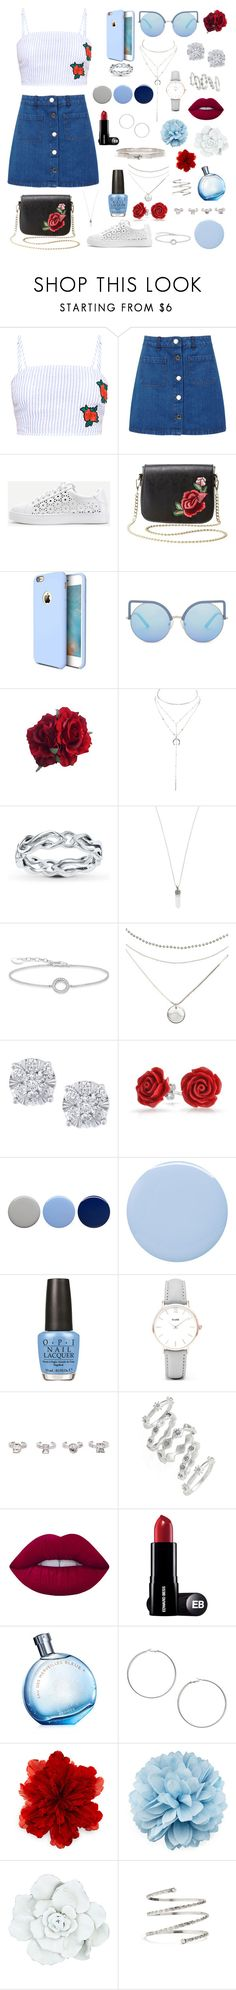 """""""rosy blue"""" by mayachera ❤ liked on Polyvore featuring Miss Selfridge, WithChic, Charlotte Russe, Torras, Matthew Williamson, Marc Jacobs, Thomas Sabo, Effy Jewelry, Bling Jewelry and Burberry"""